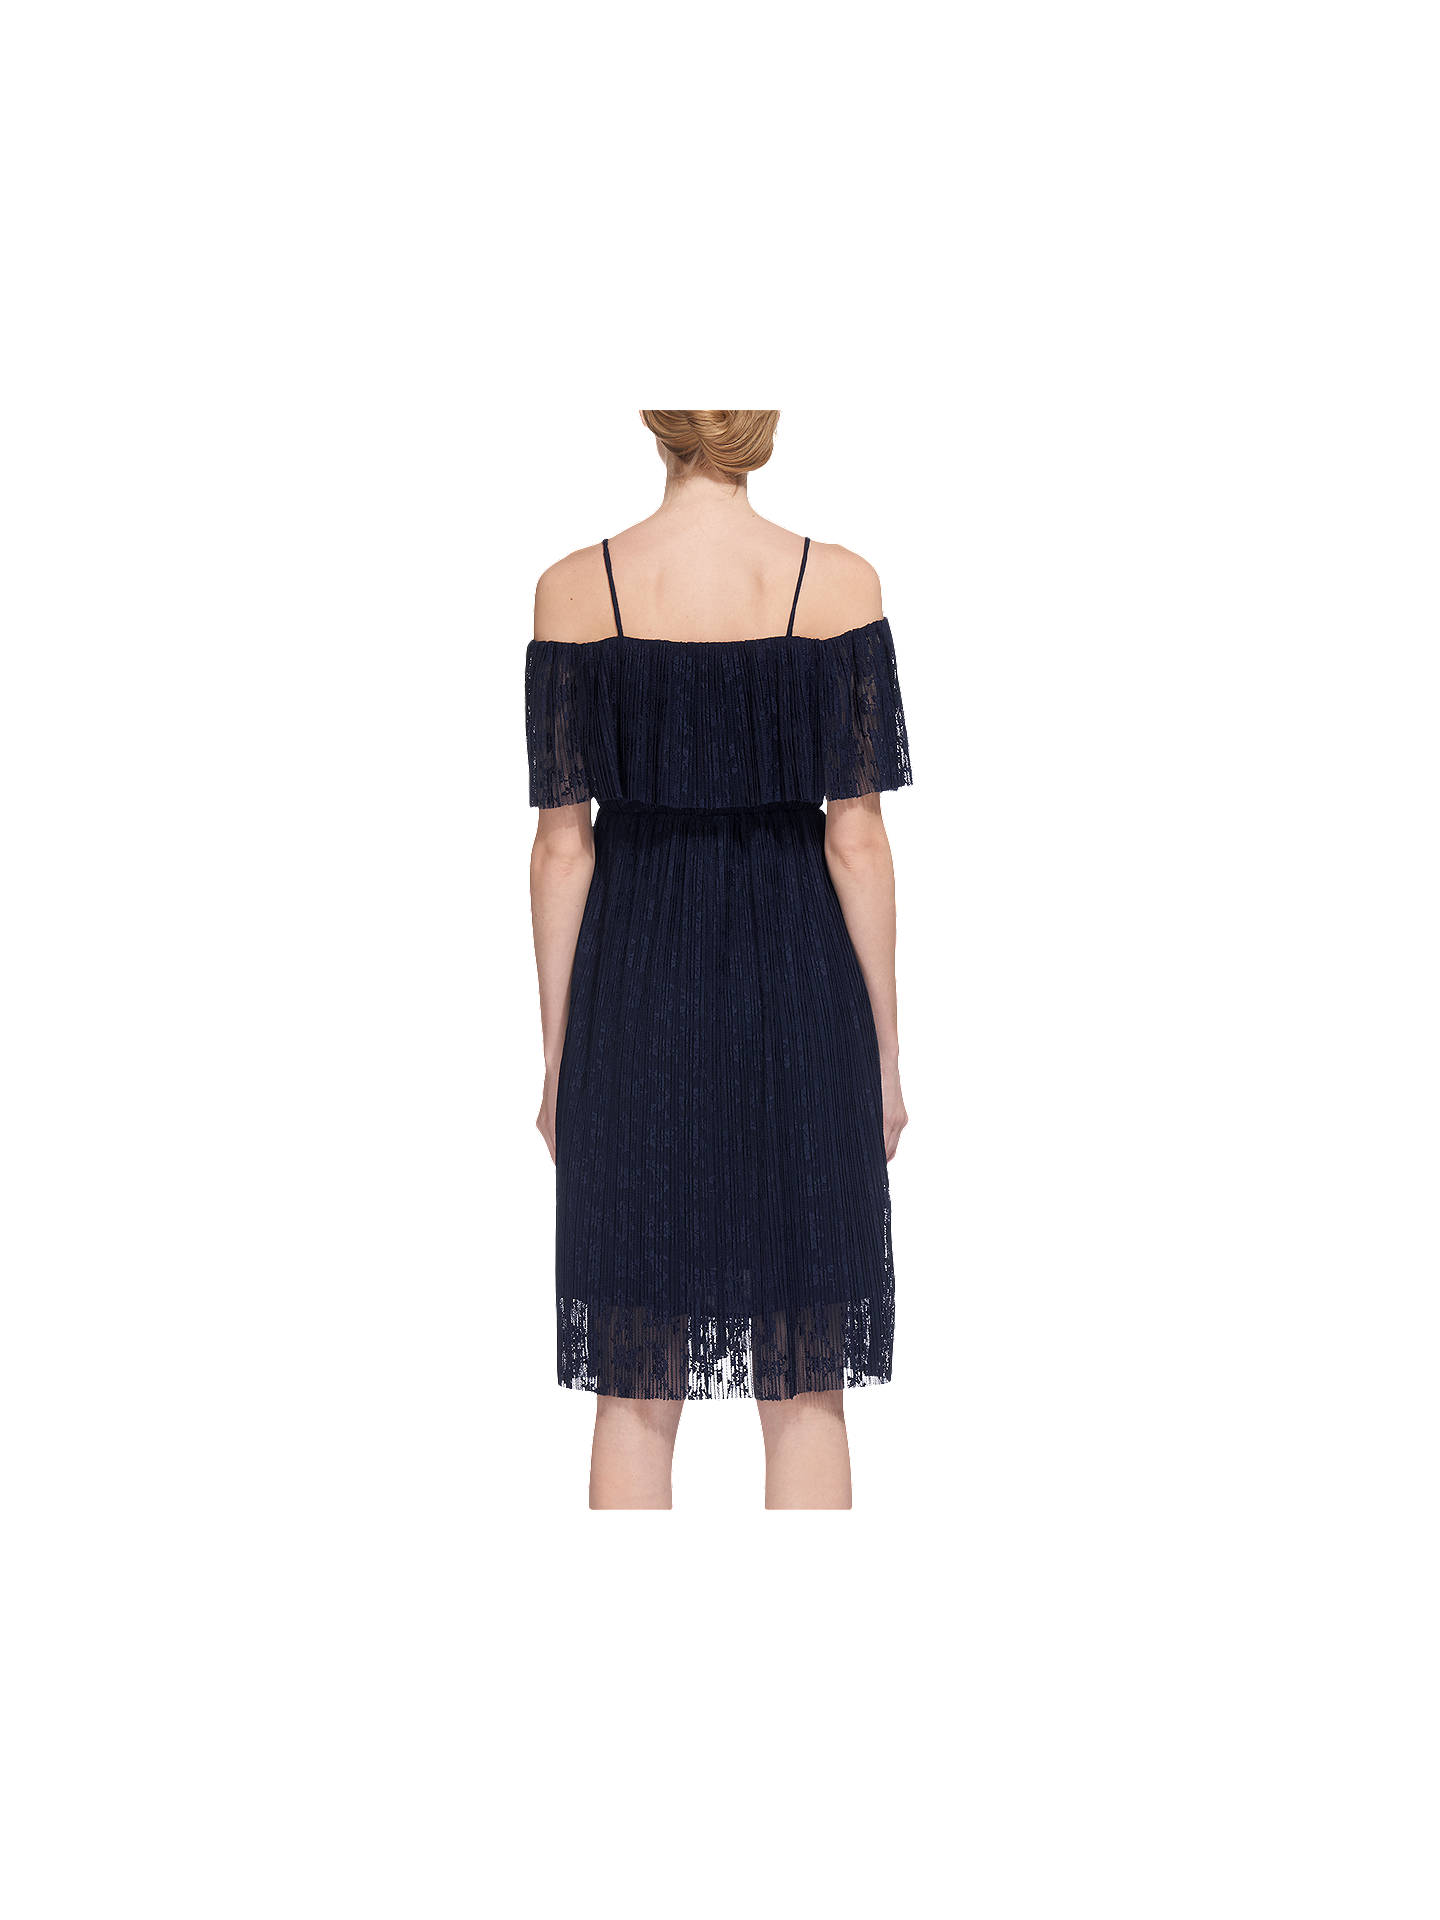 BuyWhistles Off Shoulder Pleated Dress, Navy, 6 Online at johnlewis.com